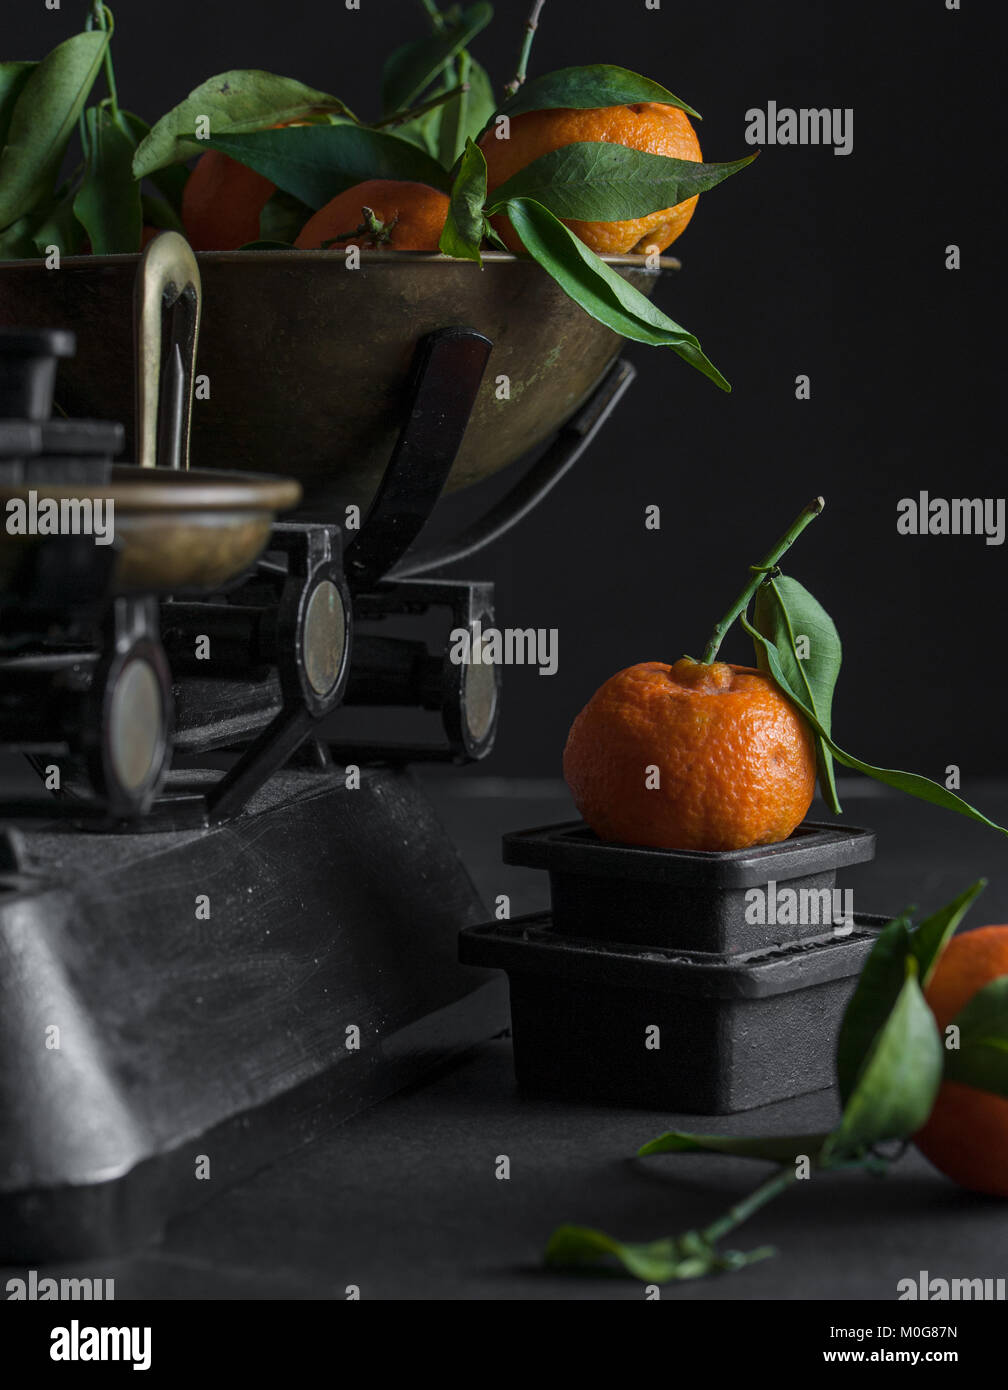 A bunch of fresh juicy clementines with green leaves in a scalepan and on a black table - Stock Image